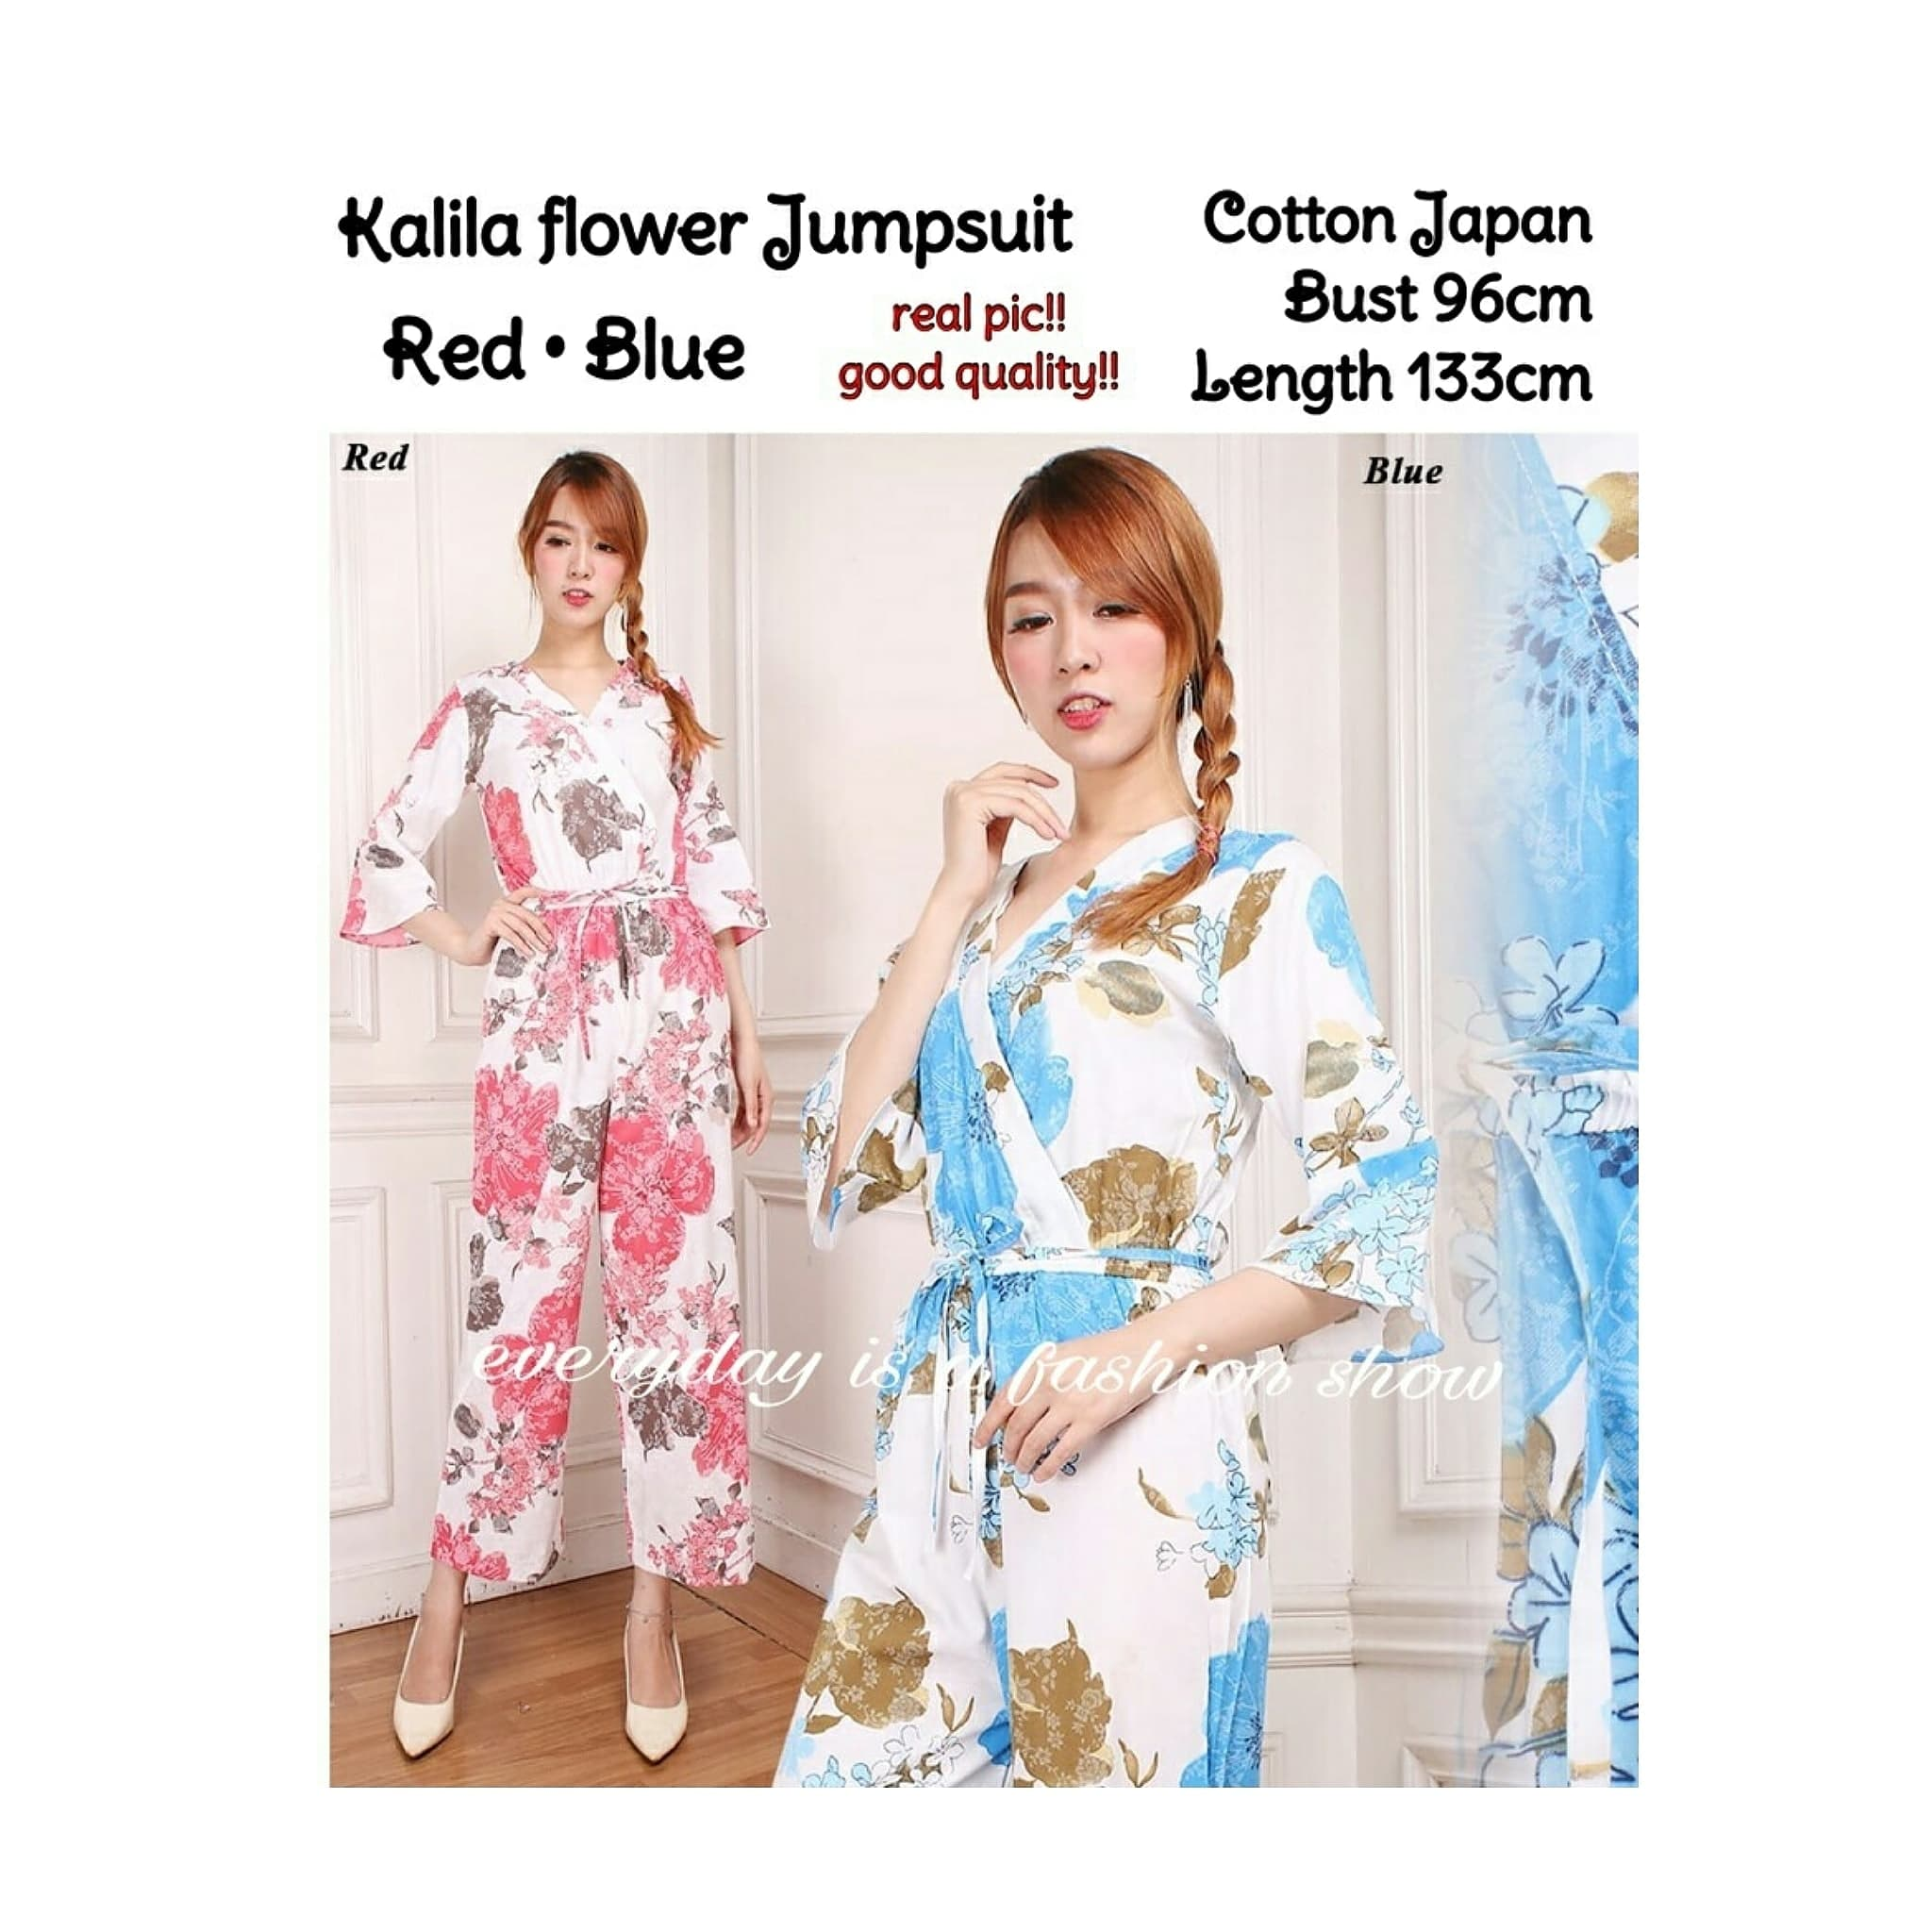 Jual Kalila Flower Long Jumpsuit 88000 Zefanya Fashion Tokopedia Dress